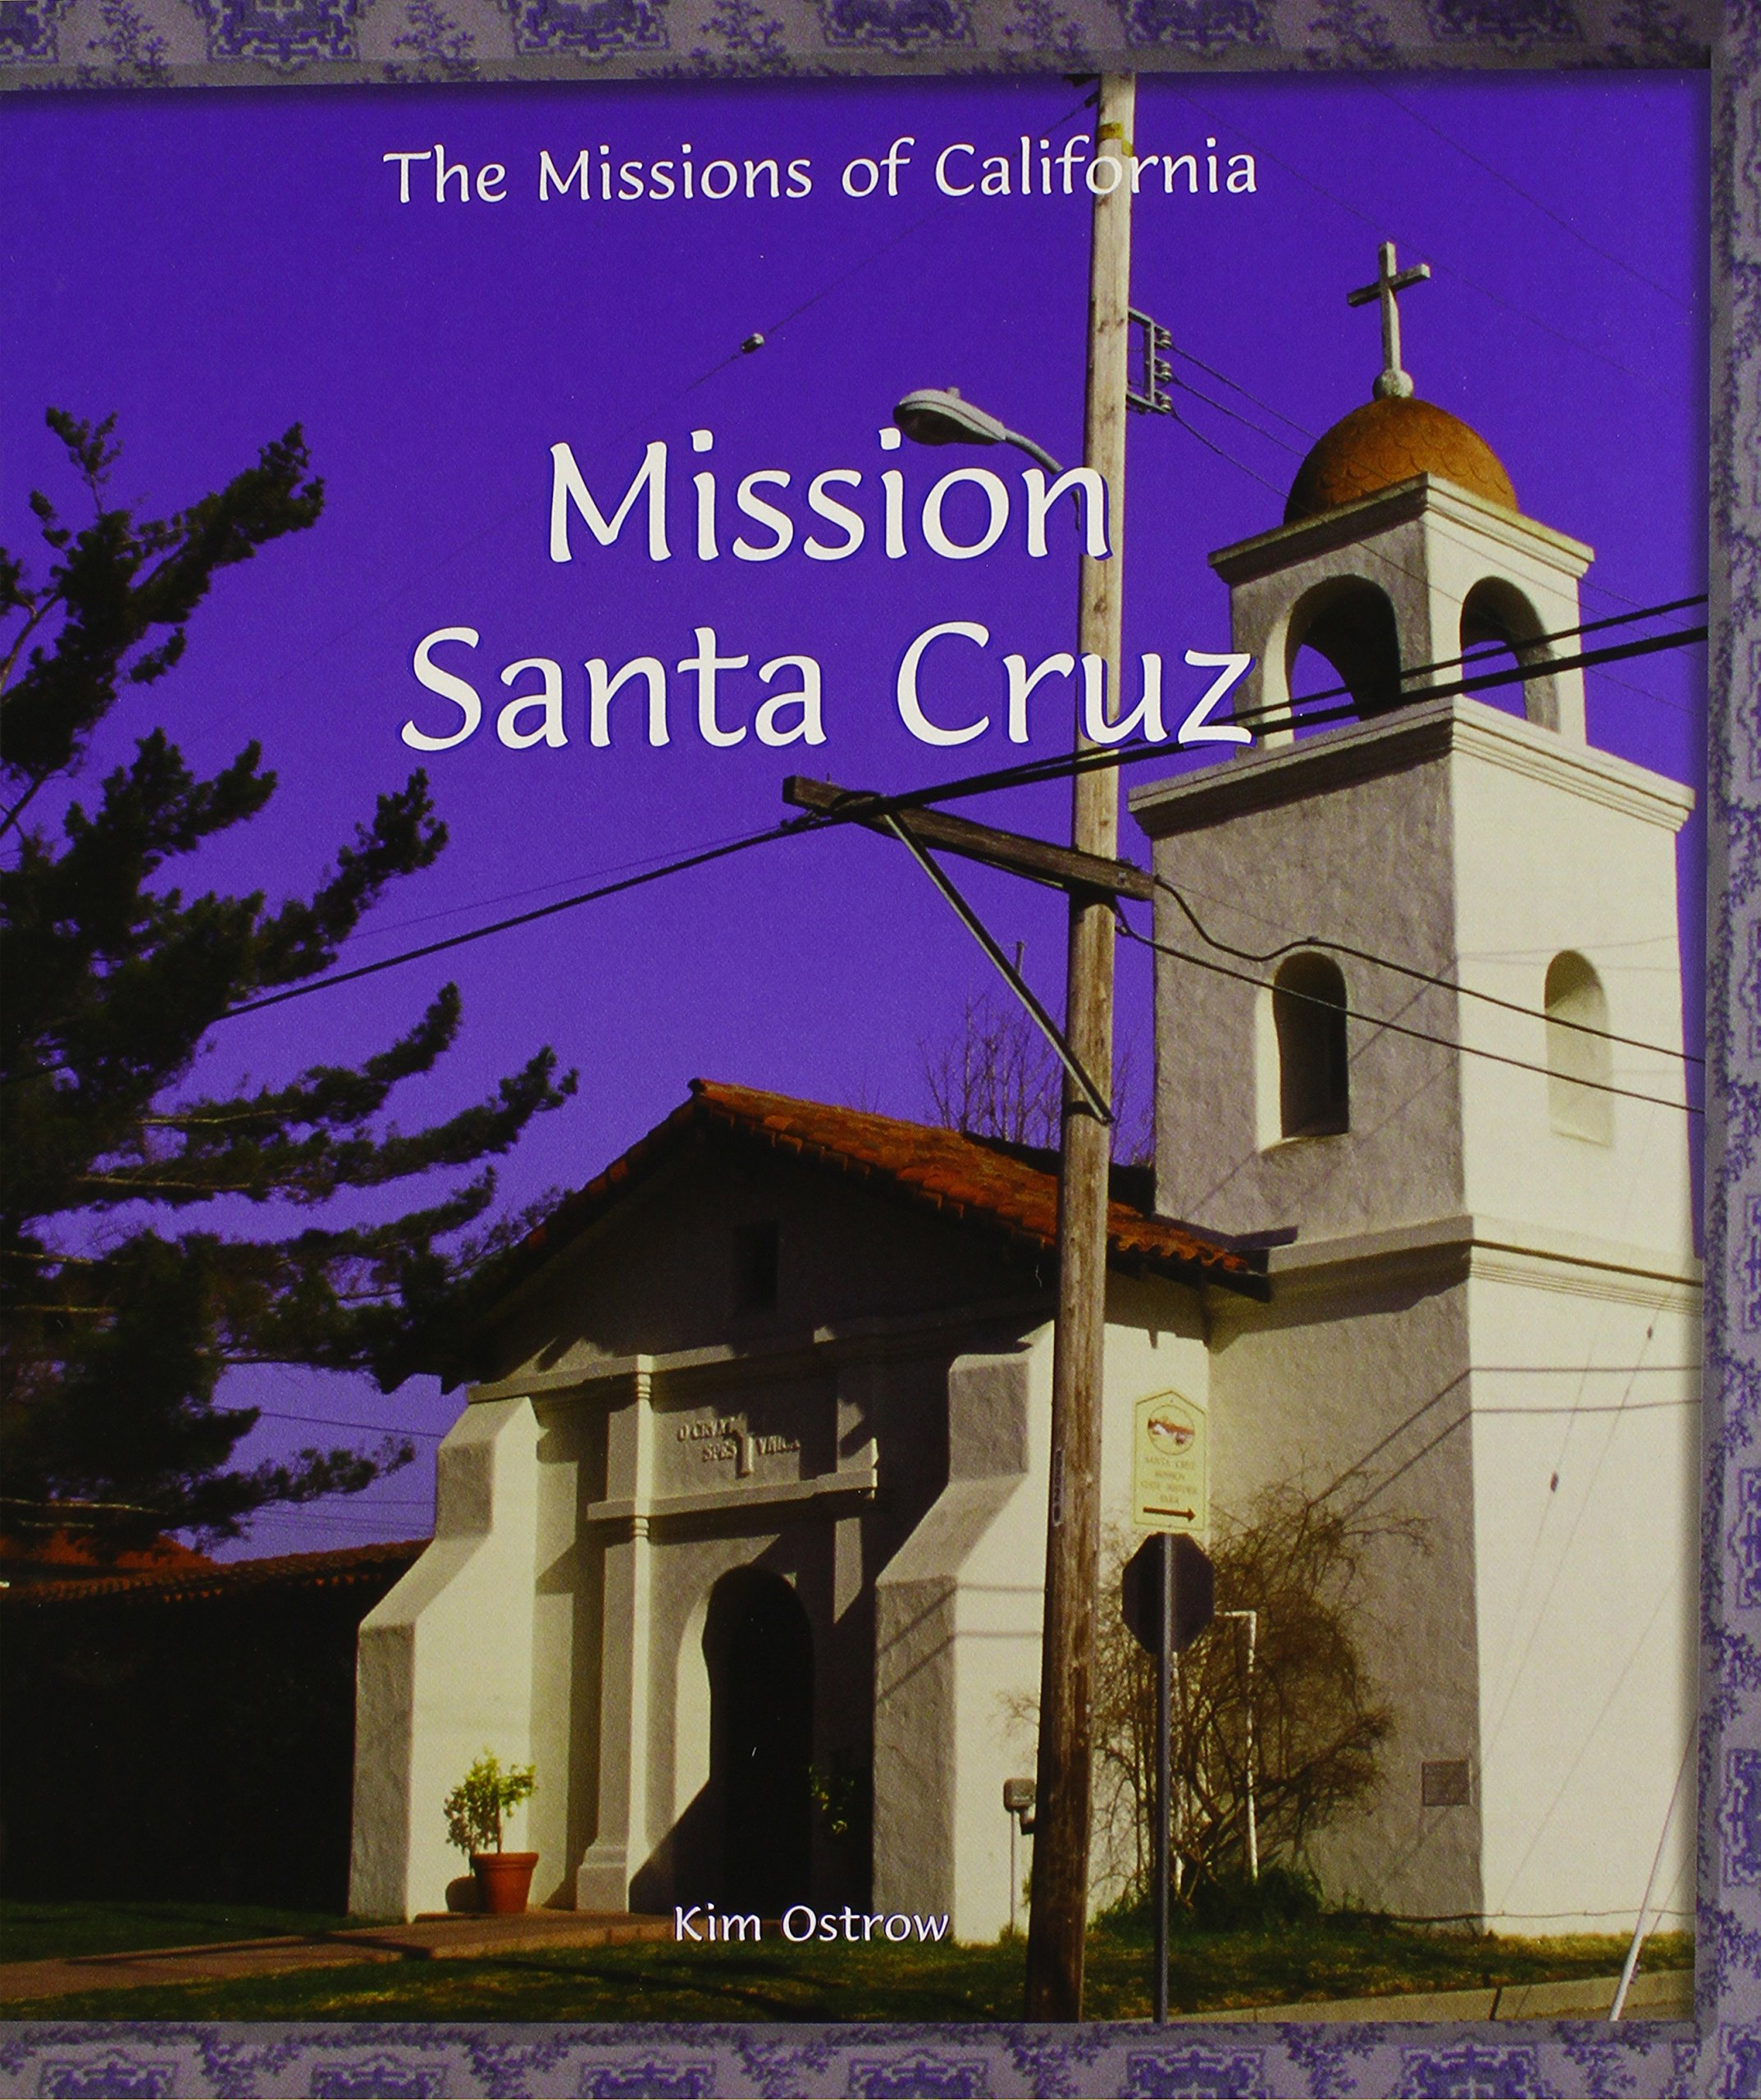 mission santa cruz missions of california kim ostrow 9780823958788 amazoncom books